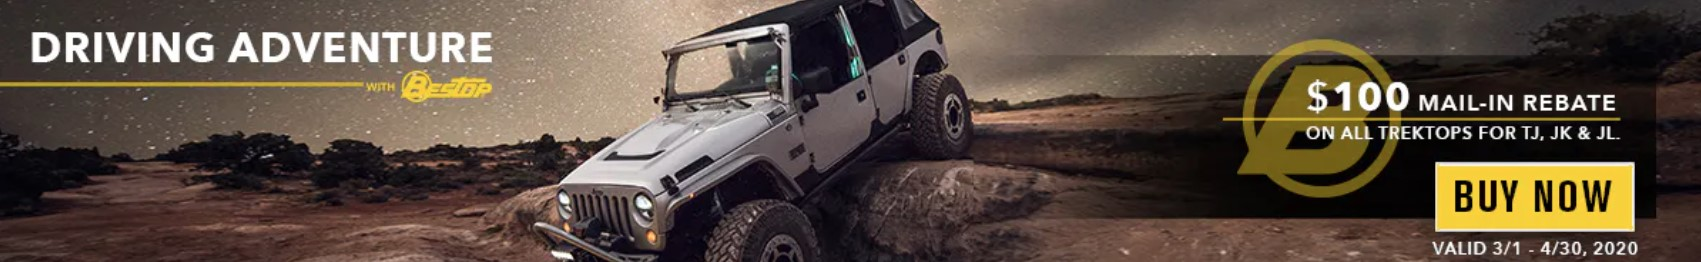 "Bestop: Get $100 Back on Trektop for TJ, JK, and JL During ""Driving Adventure"" Event"